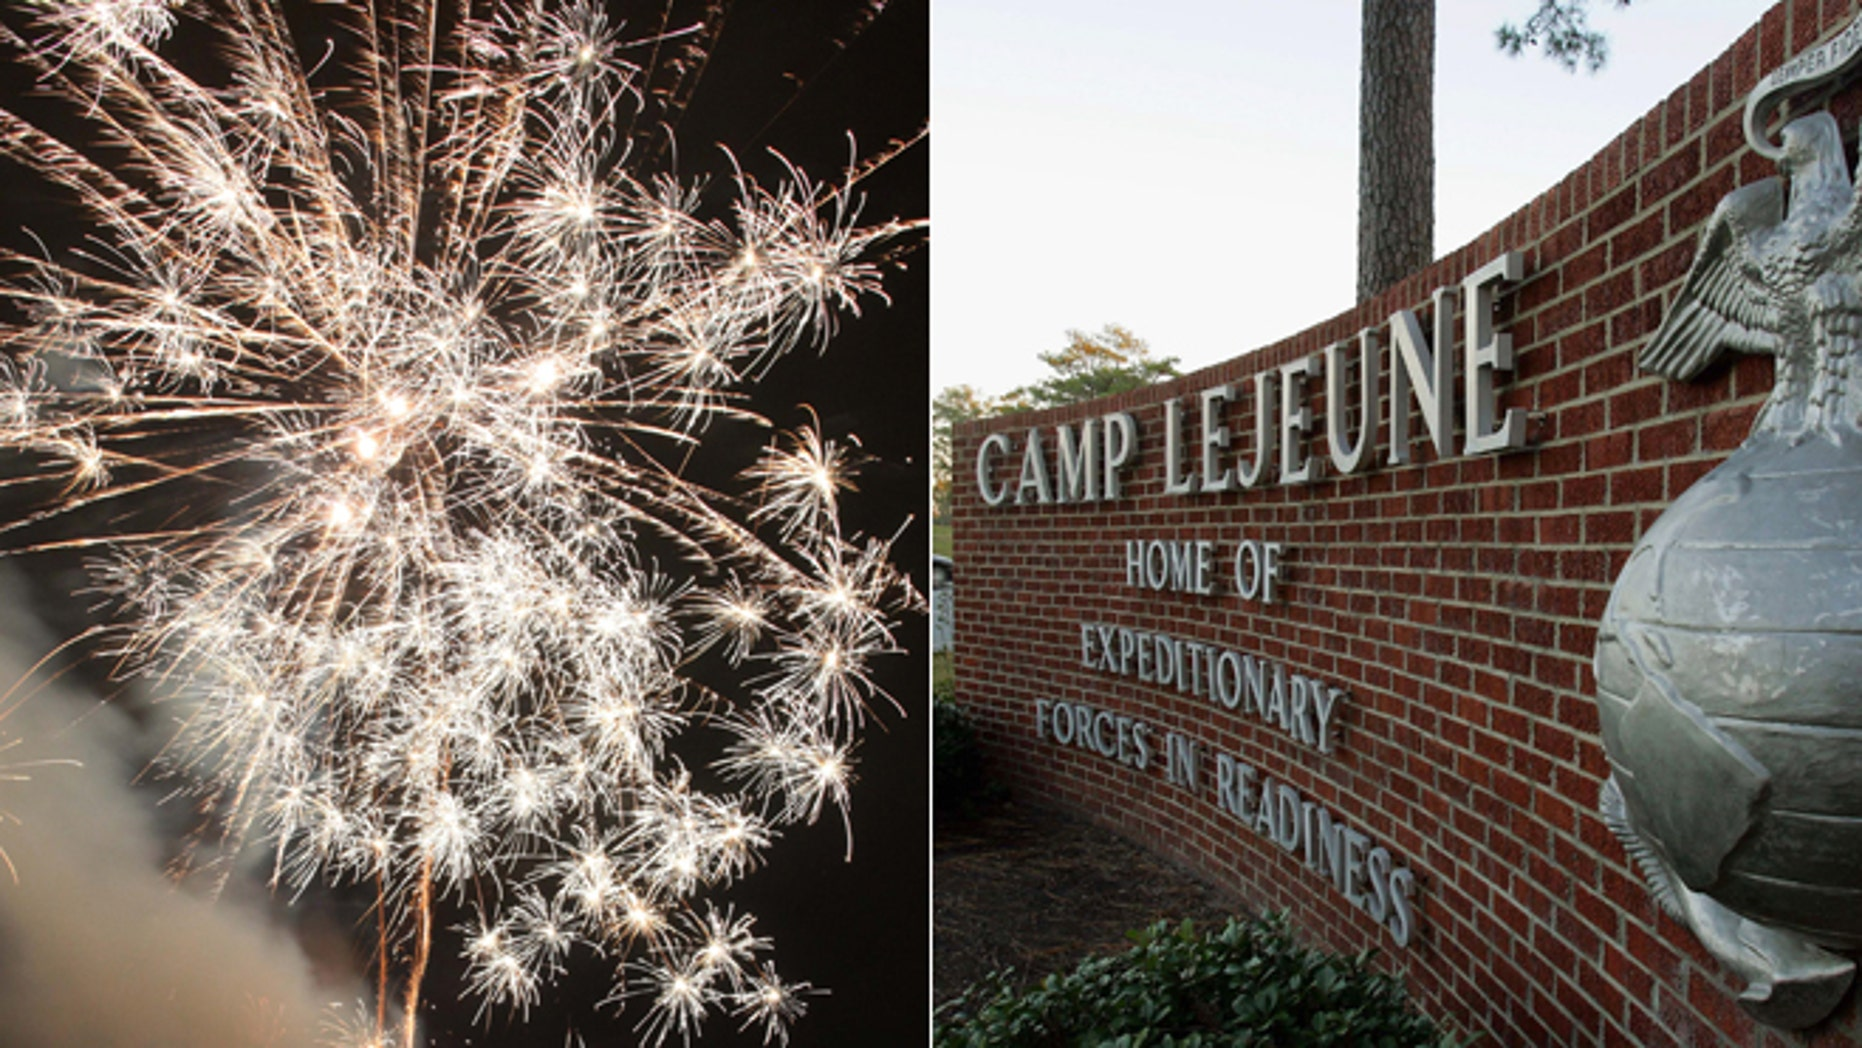 The Fourth of July won't have a patriotic boom in the skies over a number of the nation's military bases, where budget cuts and furloughed workers also mean furloughed fireworks.